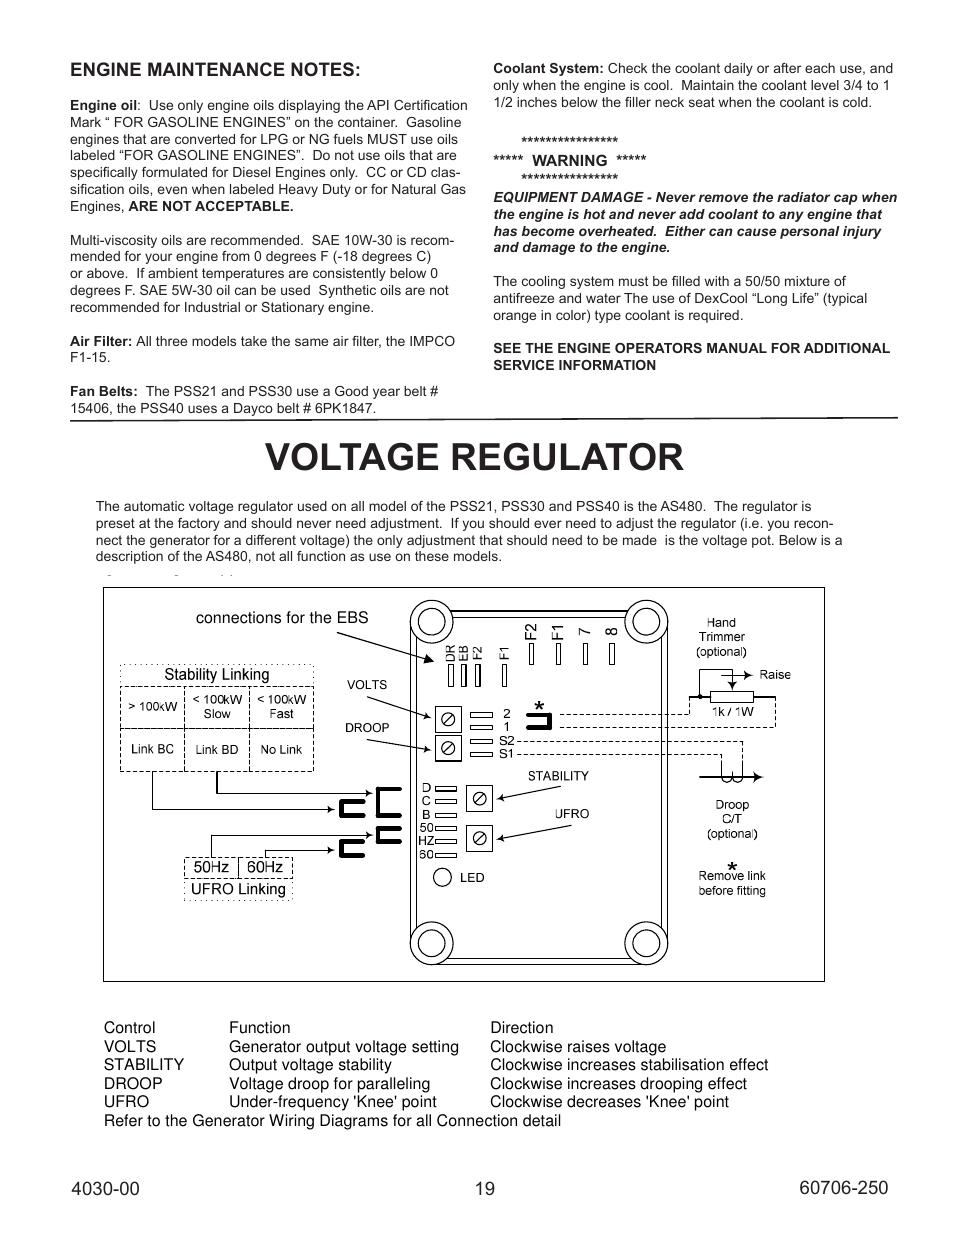 hight resolution of voltage regulator automatic voltage regulator avr winco ulpss40 i with dse 7310 engine control 2014 user manual page 19 24